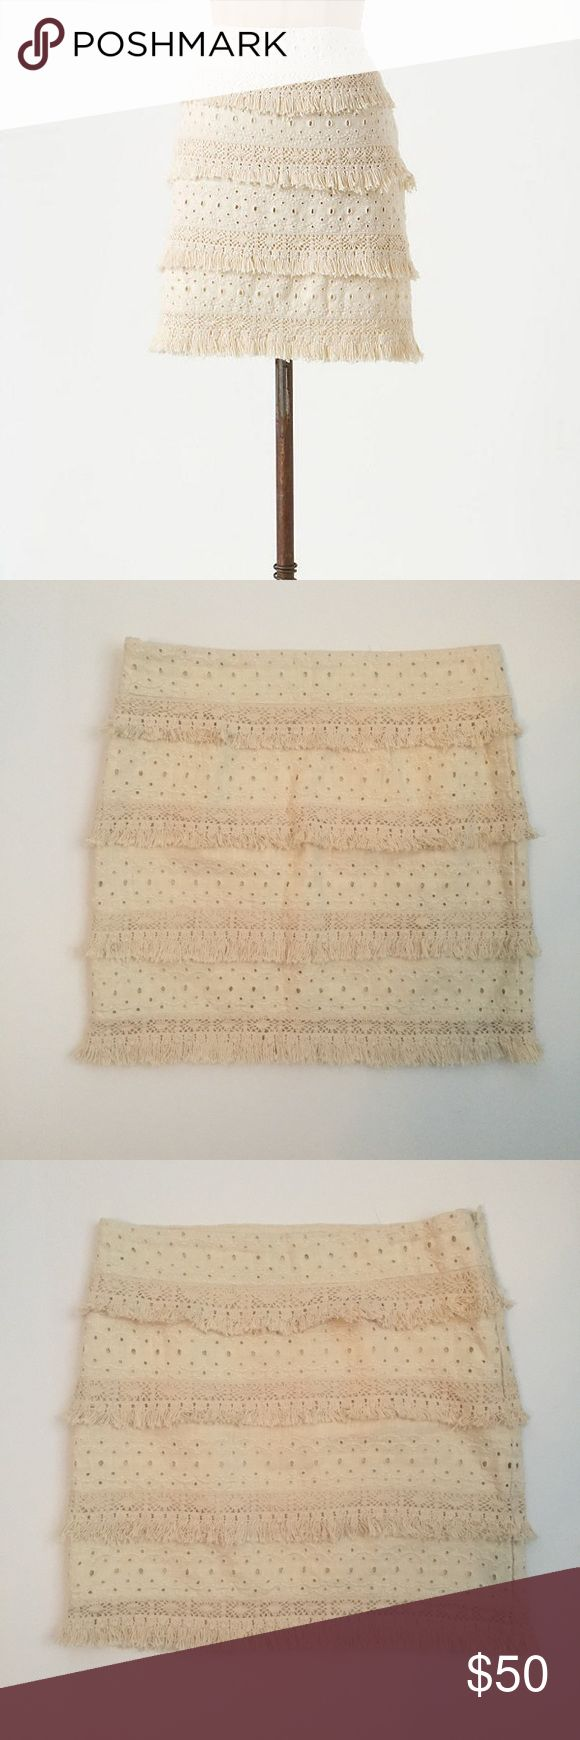 Anthropologie HD in Paris Tiered Fringe Skirt Linen and cotton fringe tiered skirt from Anthropologie. A heavier material, perfect for spring with a chambray blouse and booties. Perfect condition, I'll take reasonable offers. Anthropologie Skirts Mini